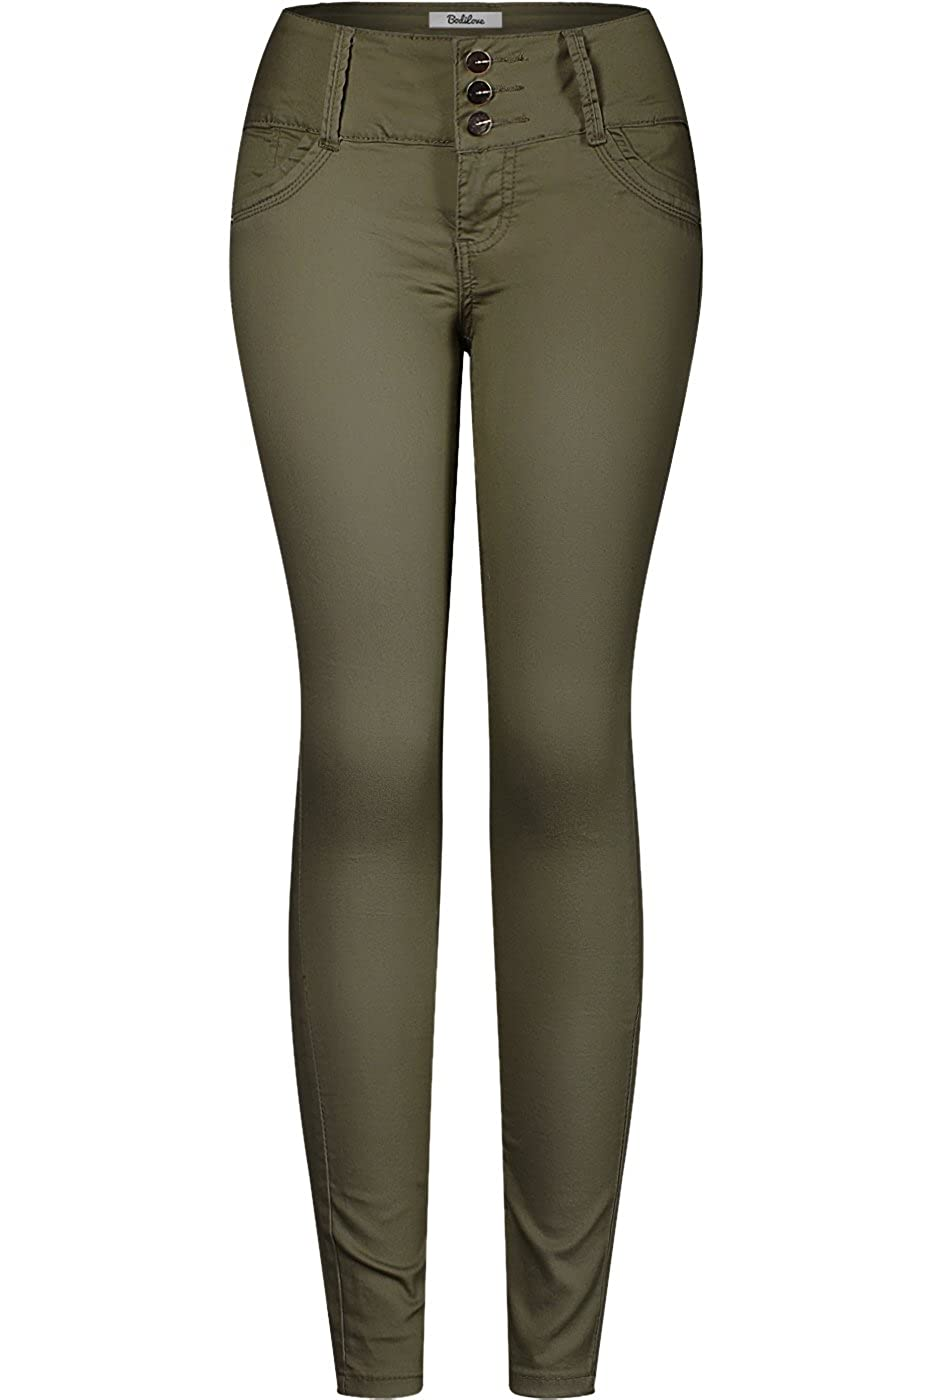 Dark Green2 2LUV Women's 3 Button Stretchy Uniform Pants Skinny color Jeans